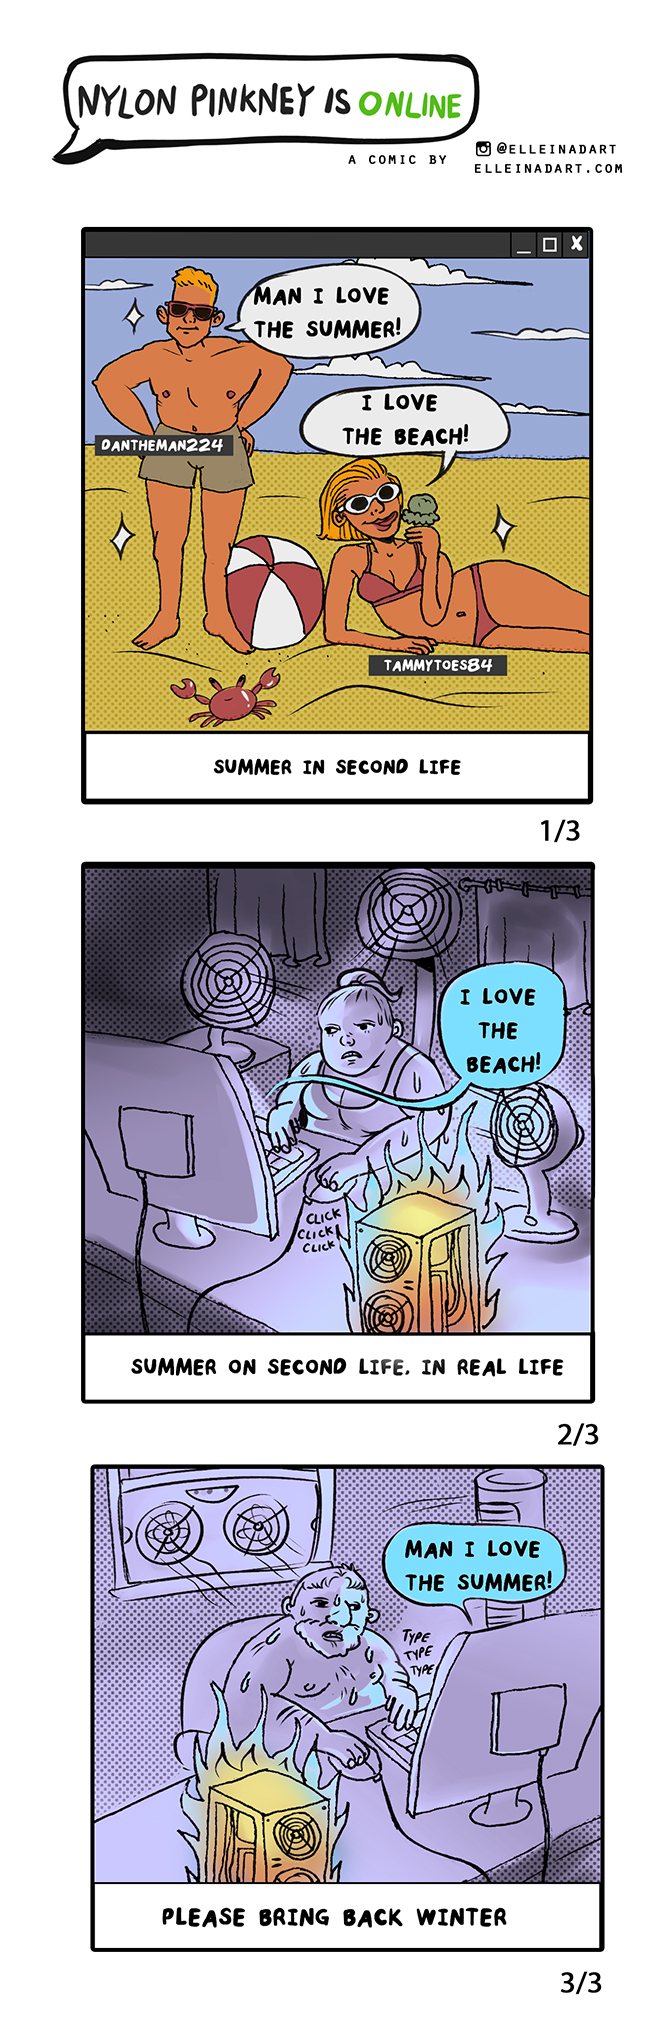 Game comic mmo nylonisonline